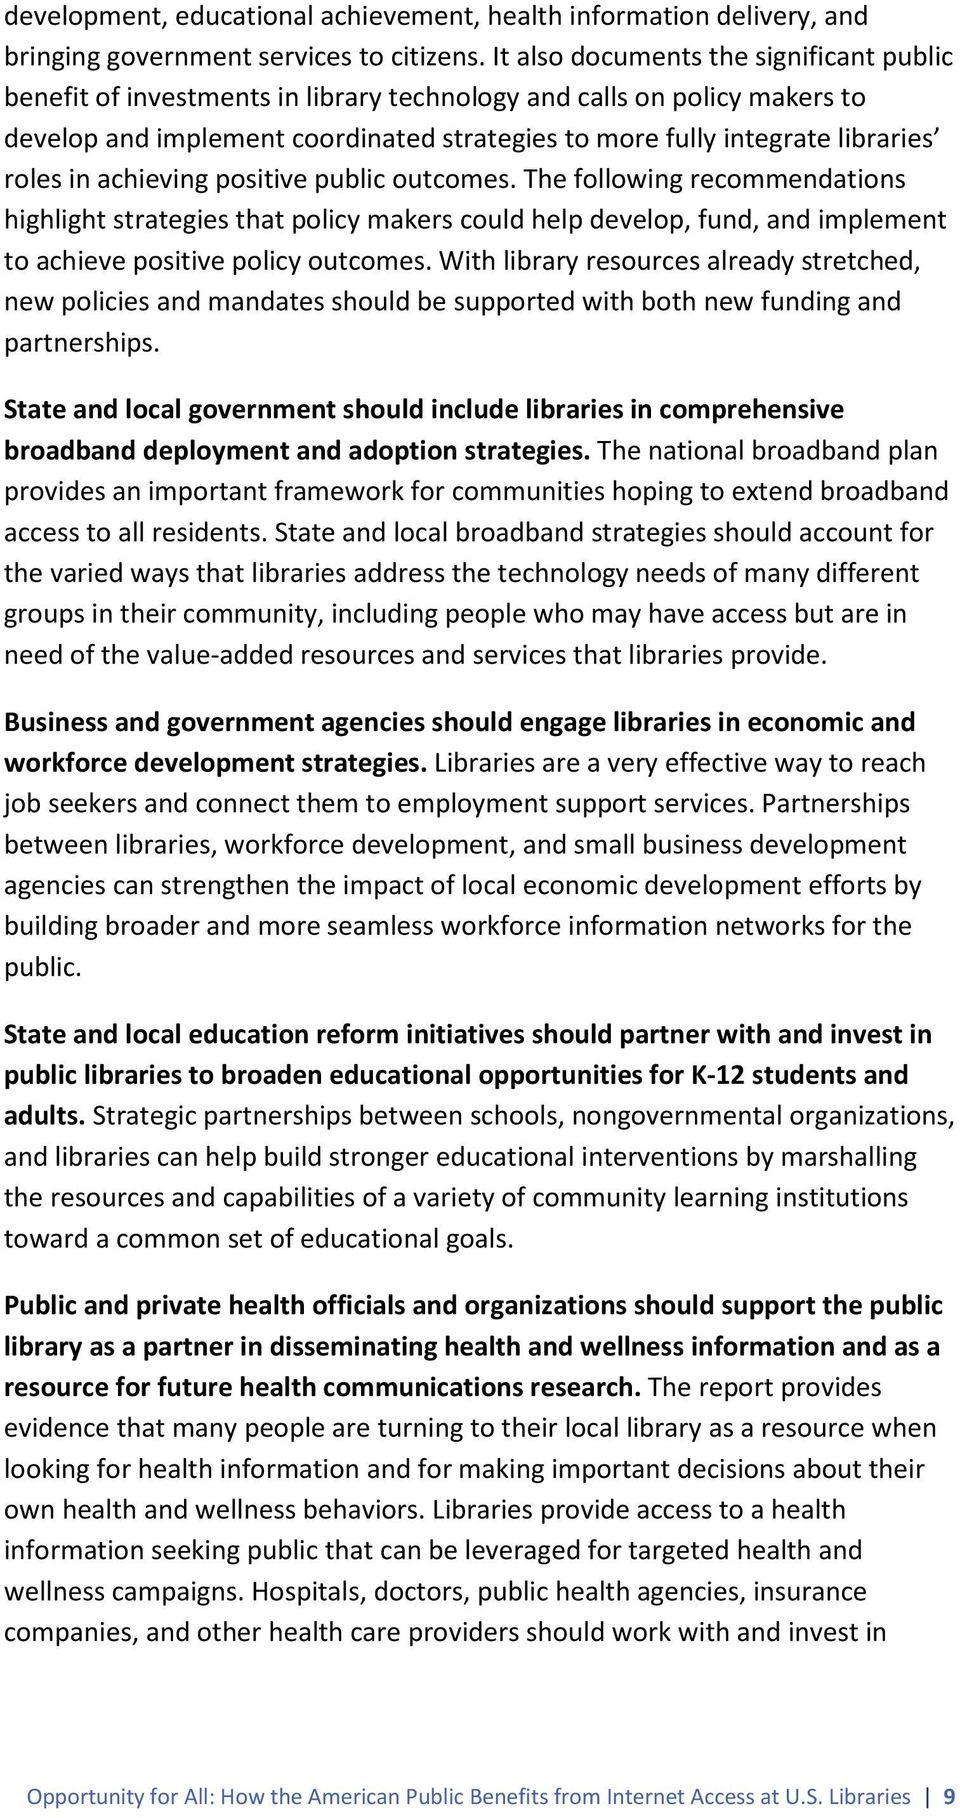 roles in achieving positive public outcomes. The following recommendations highlight strategies that policy makers could help develop, fund, and implement to achieve positive policy outcomes.